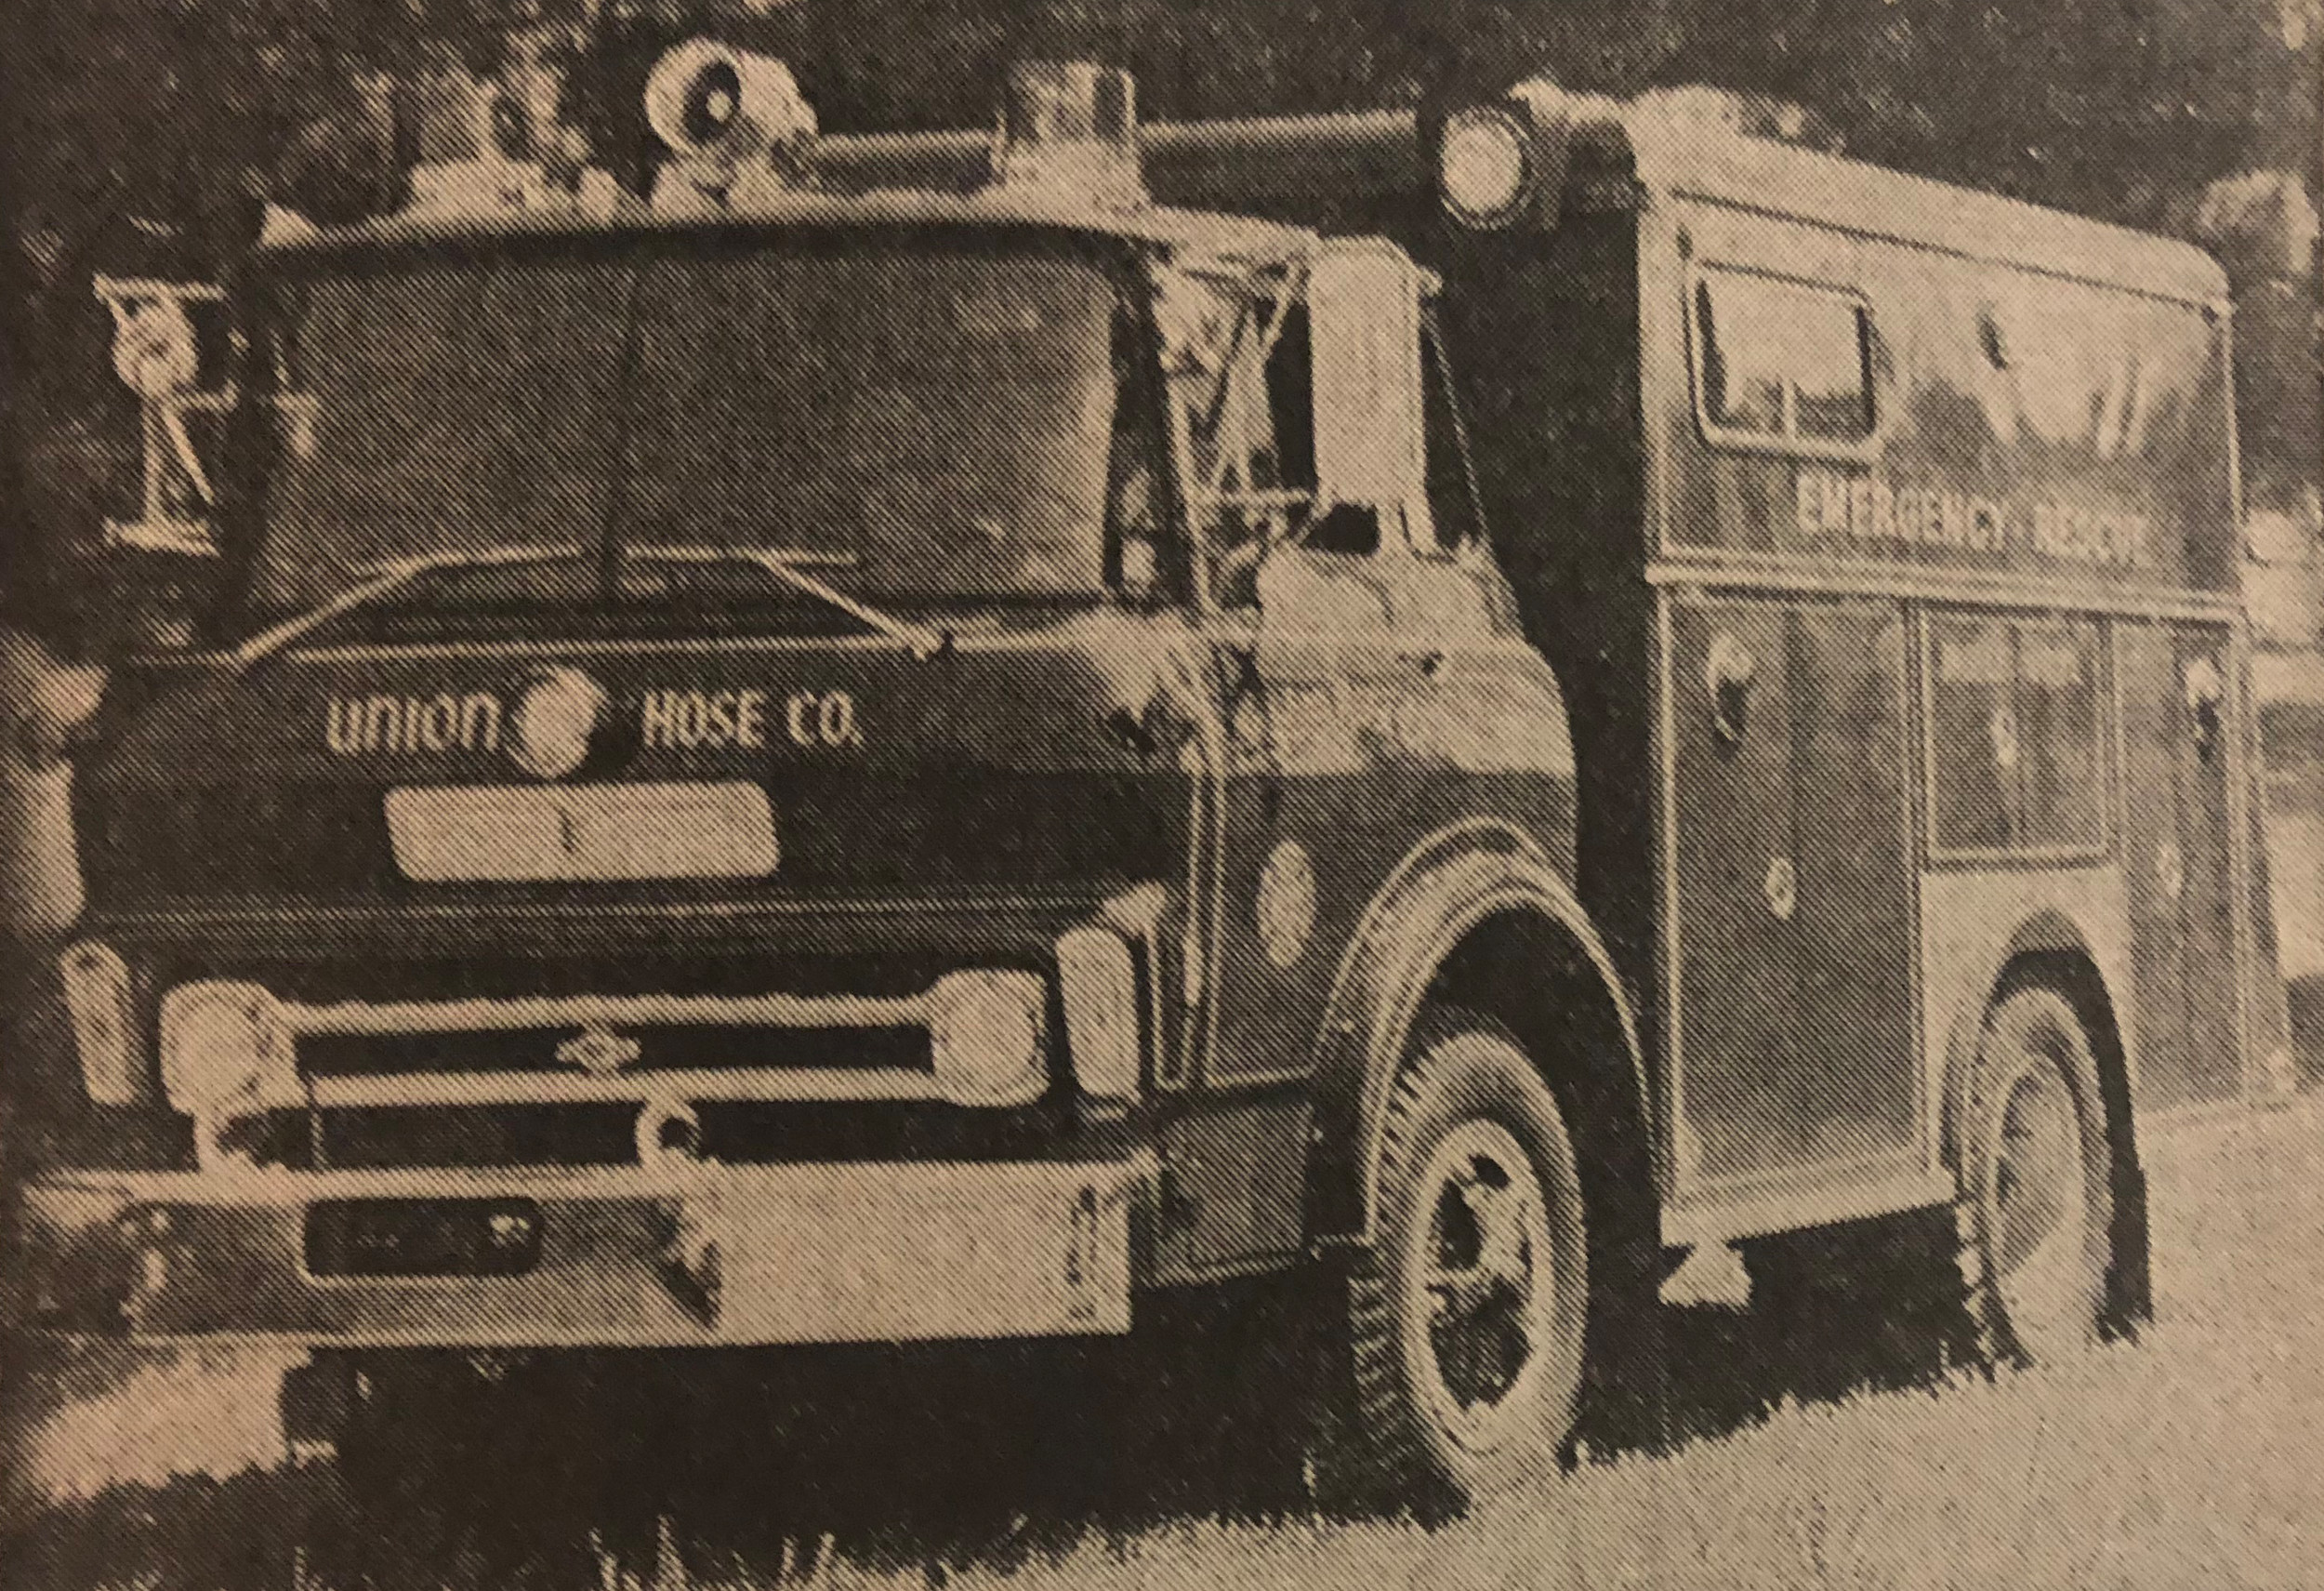 The Rescue Squad of Union Hose Company 1971 Chevrolet Rescue Truck